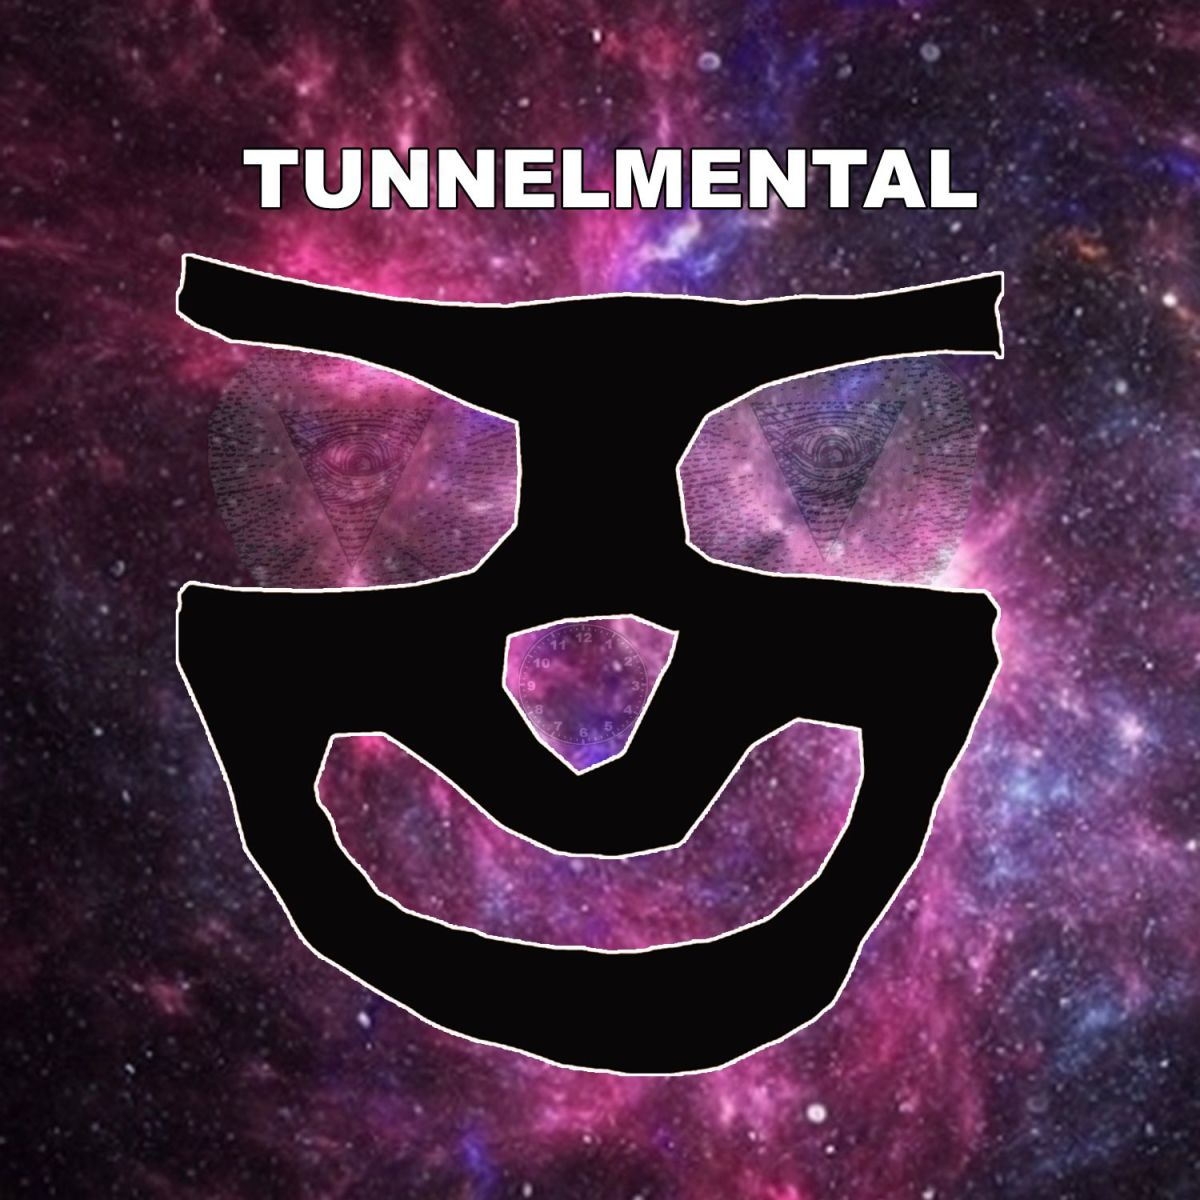 Tunnelmental - Artificial Intelligence [Synth Pop, Electro]